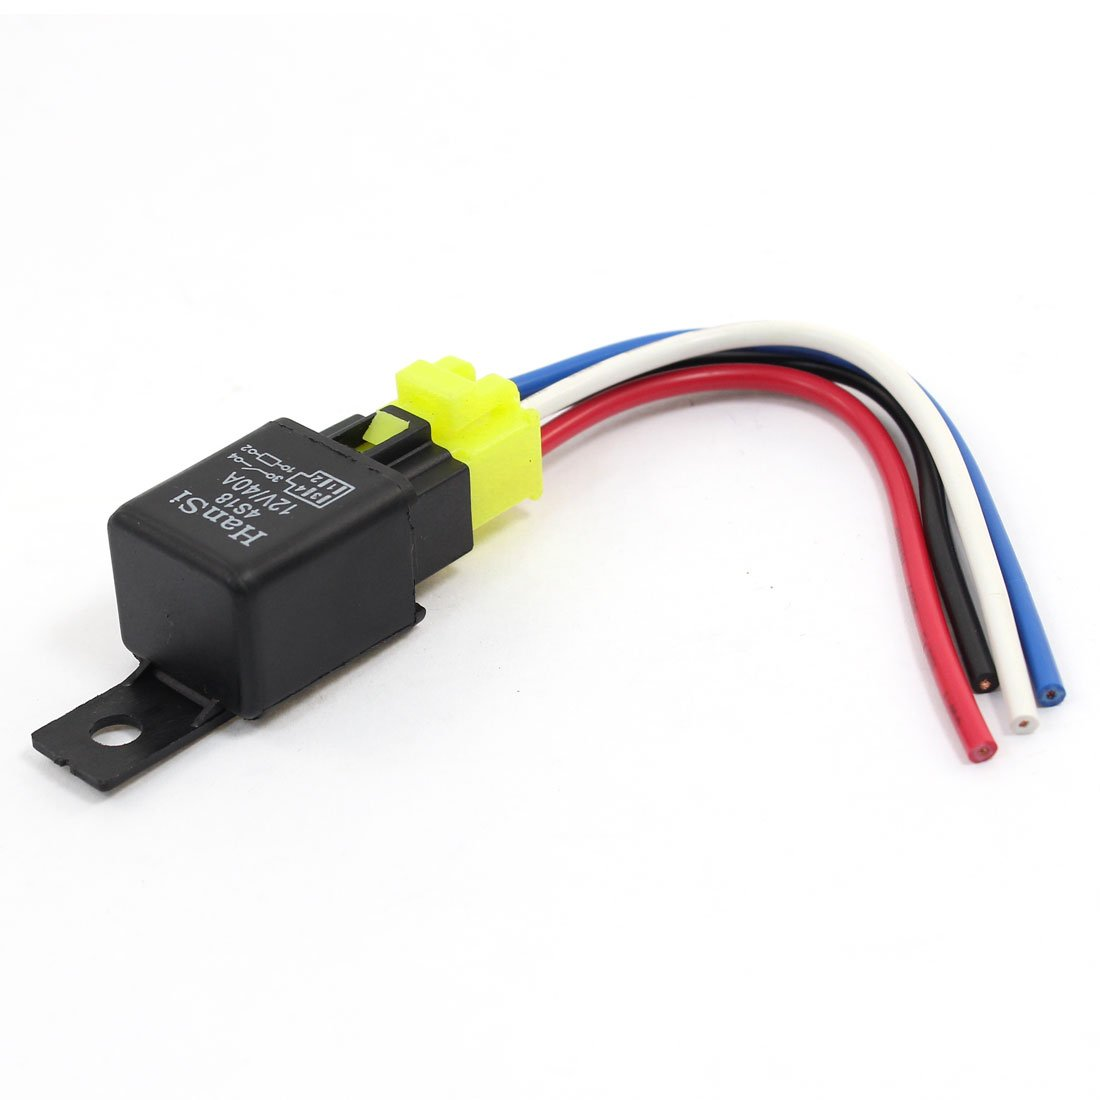 Uxcell A13112800ux1074 Car Auto Truck Spst 4 Pin Relay Dpdt Toggle Switch Wiring Diagram Together With Double Coil Plastic Socket Harness Wire 40a 12v Dc Industrial Scientific